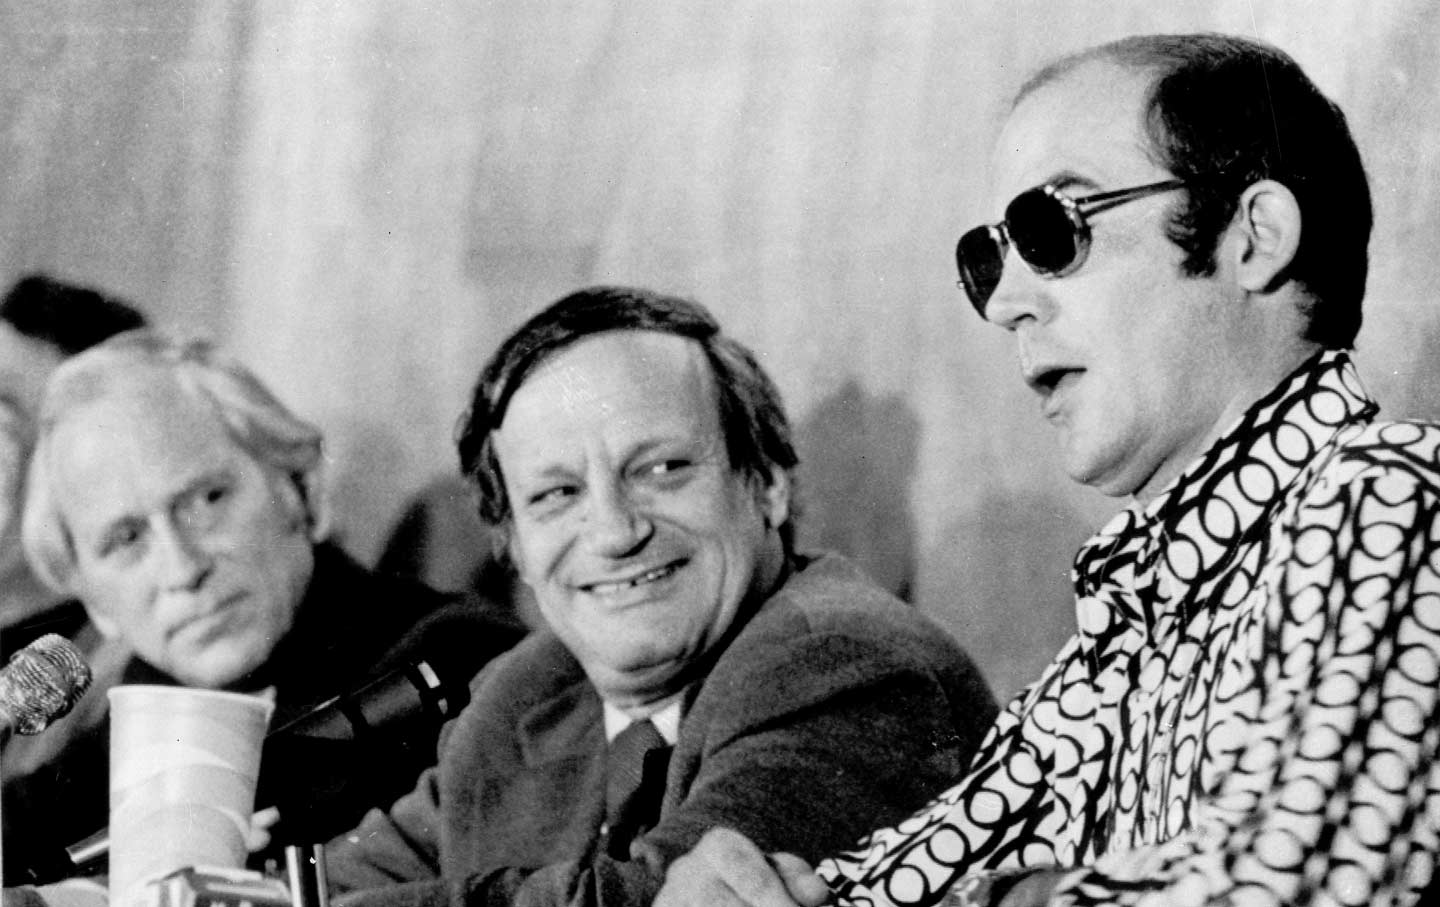 this political theorist predicted the rise of trumpism his hunter s thompson right speaks at a panel discussion in new haven connecticut on 7 1972 ap photo